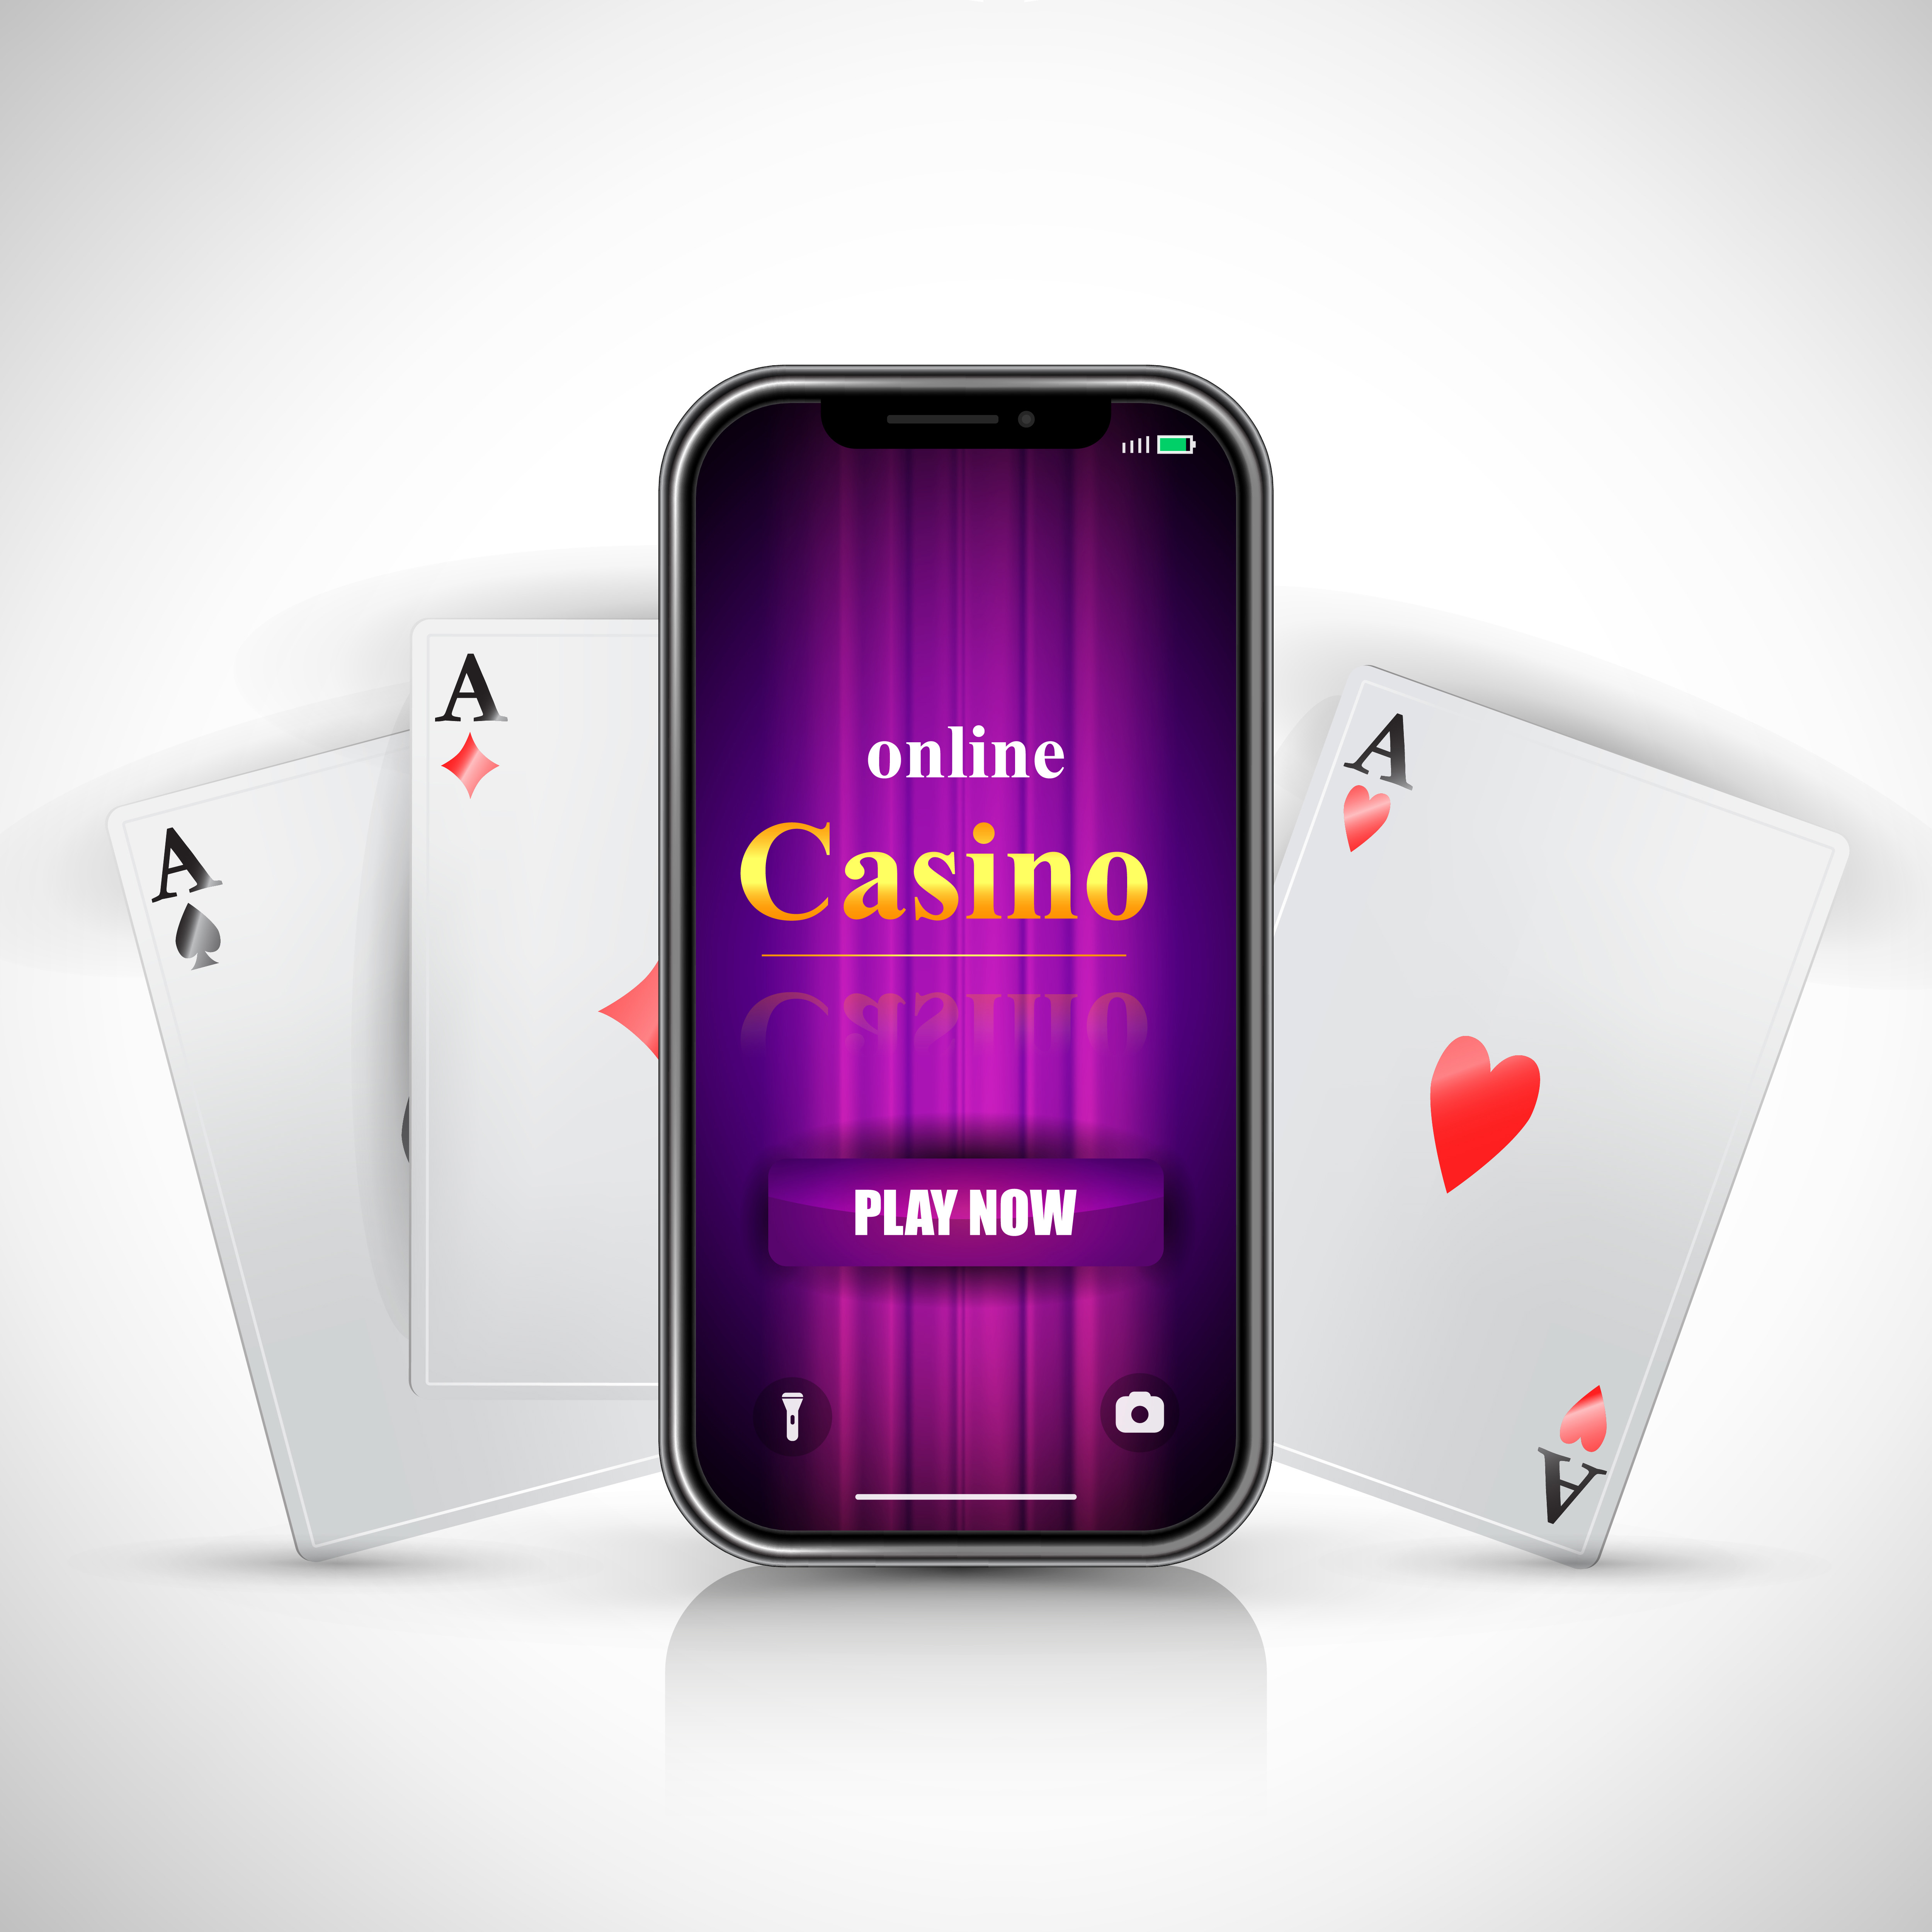 Online casino play now lettering on smartphone screen and three aces on white background. Casino business advertising design. For posters, banners, leaflets and brochures.